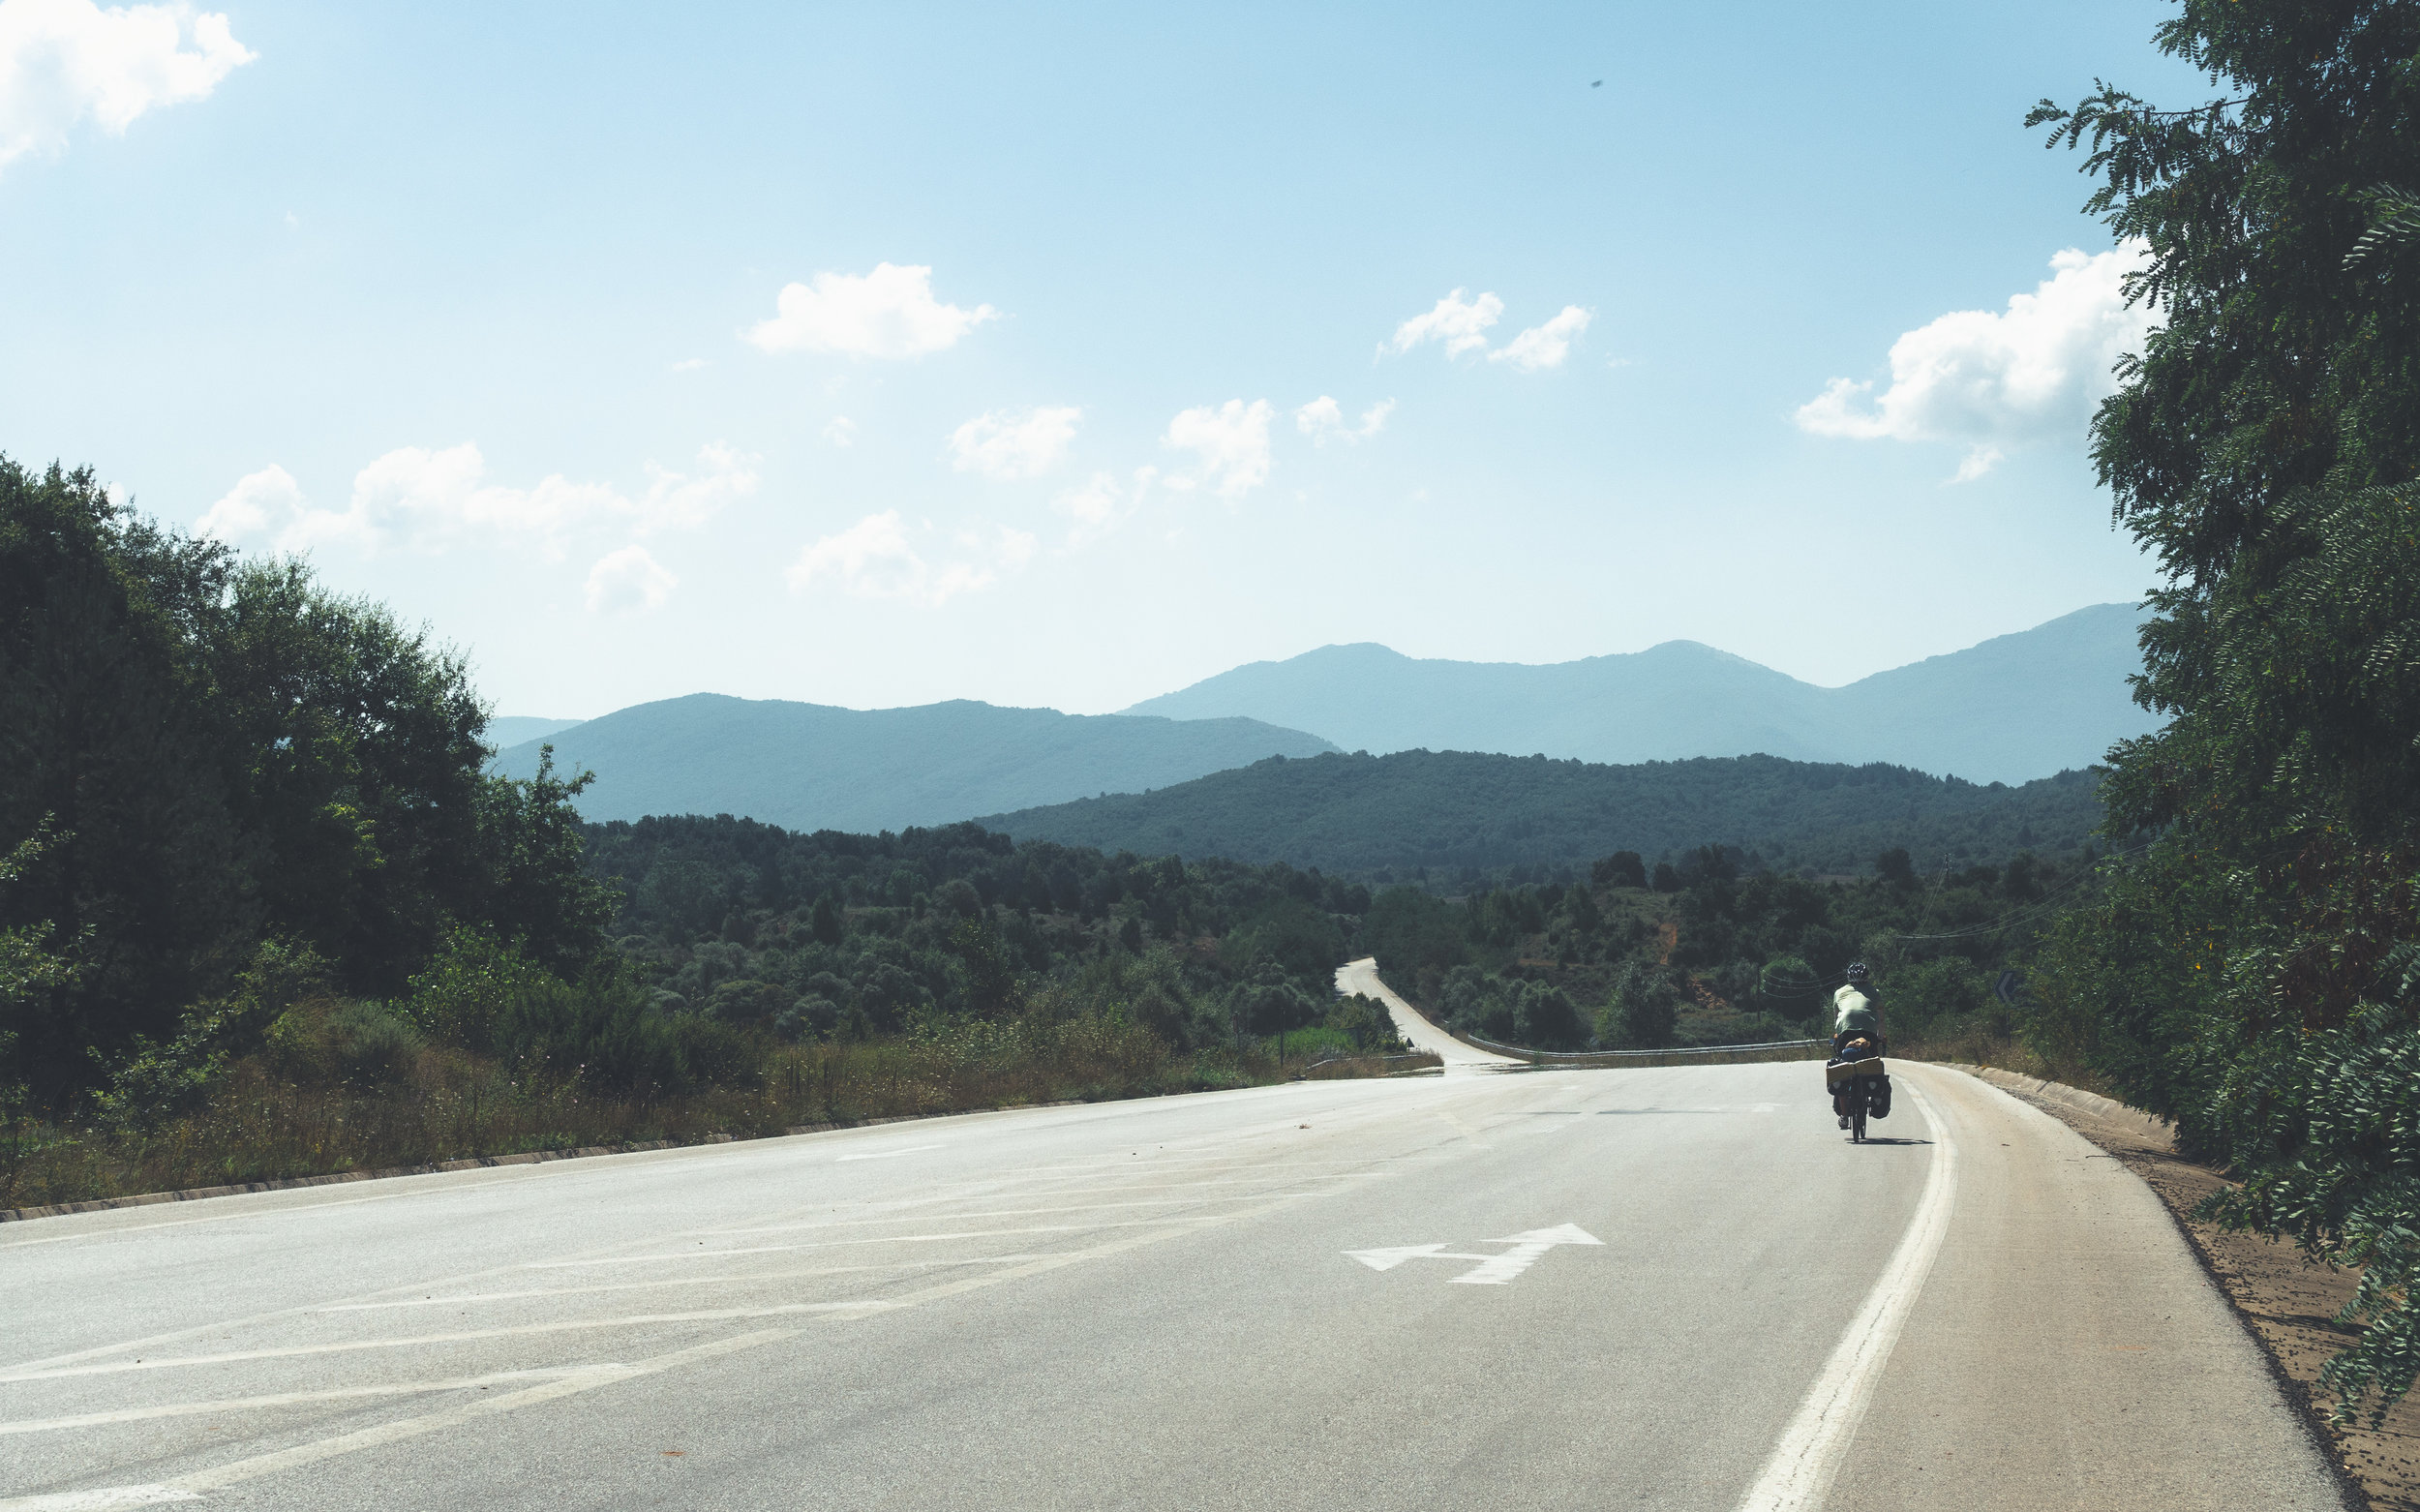 Crossing over into Greece!